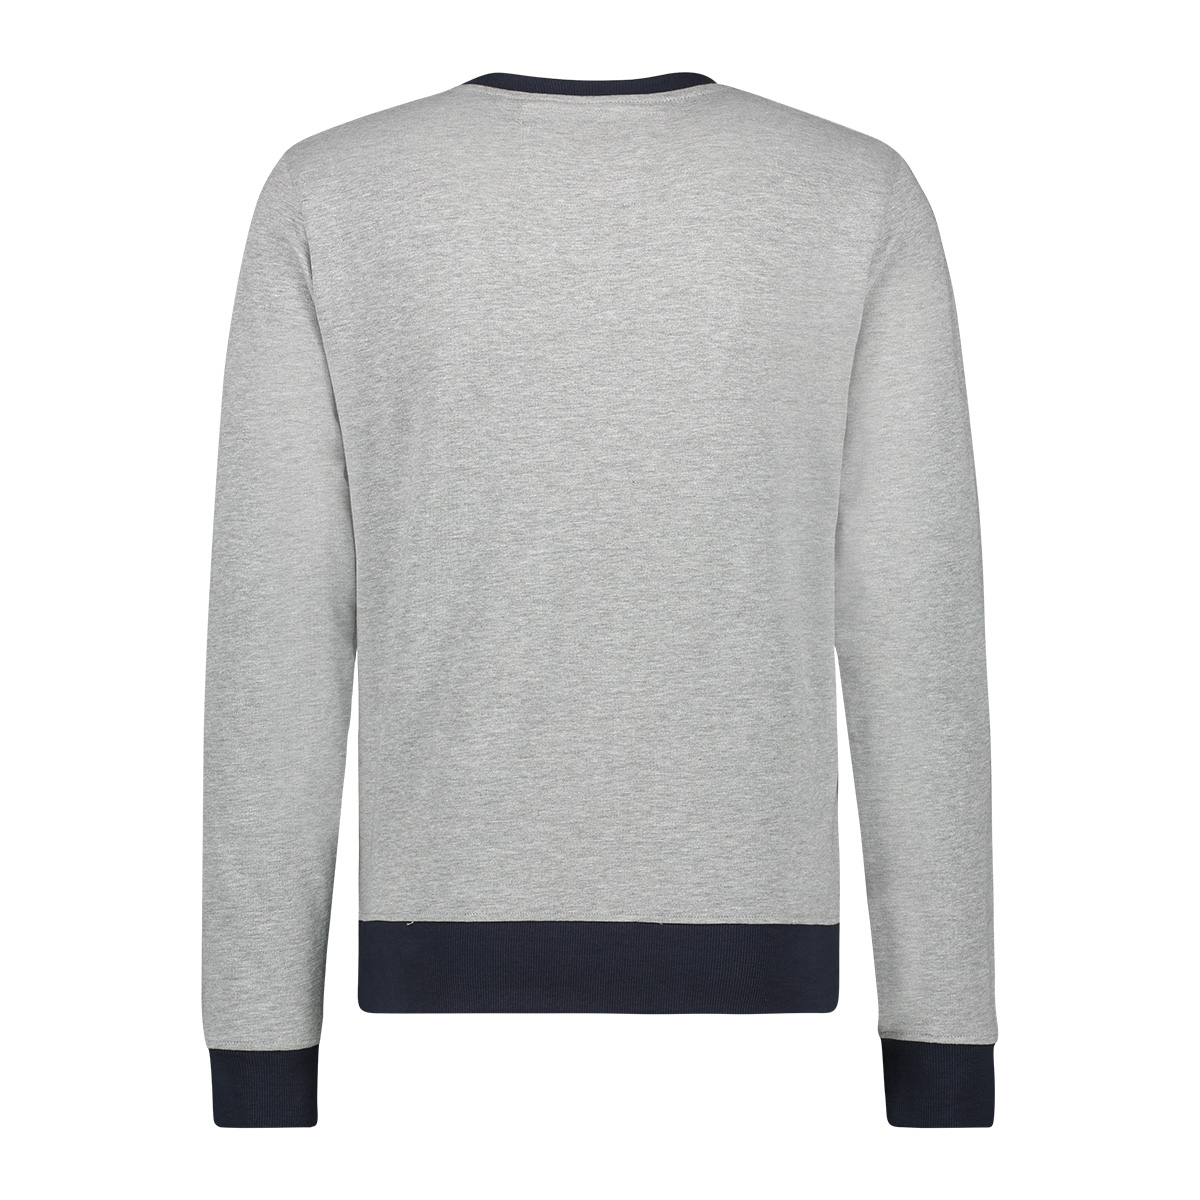 sweat arctic mu12 0444 haze & finn sweater light grey melange dark navy